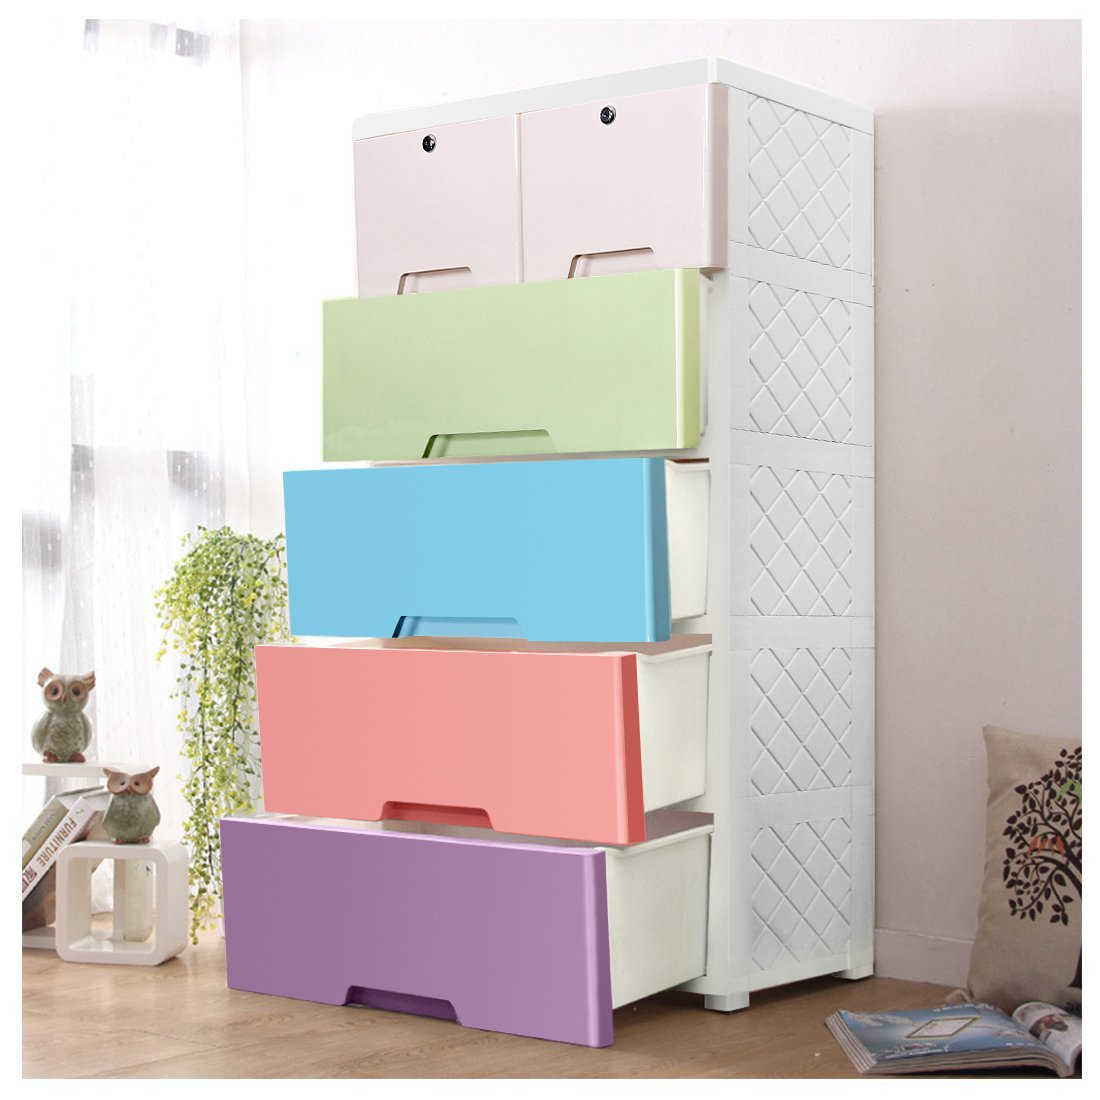 YUTING Children's Wardrobe With-4Drawers And 2 Storages Cabinet. Plastic Thicker Drawer Wardrobe.Easy Assembly!